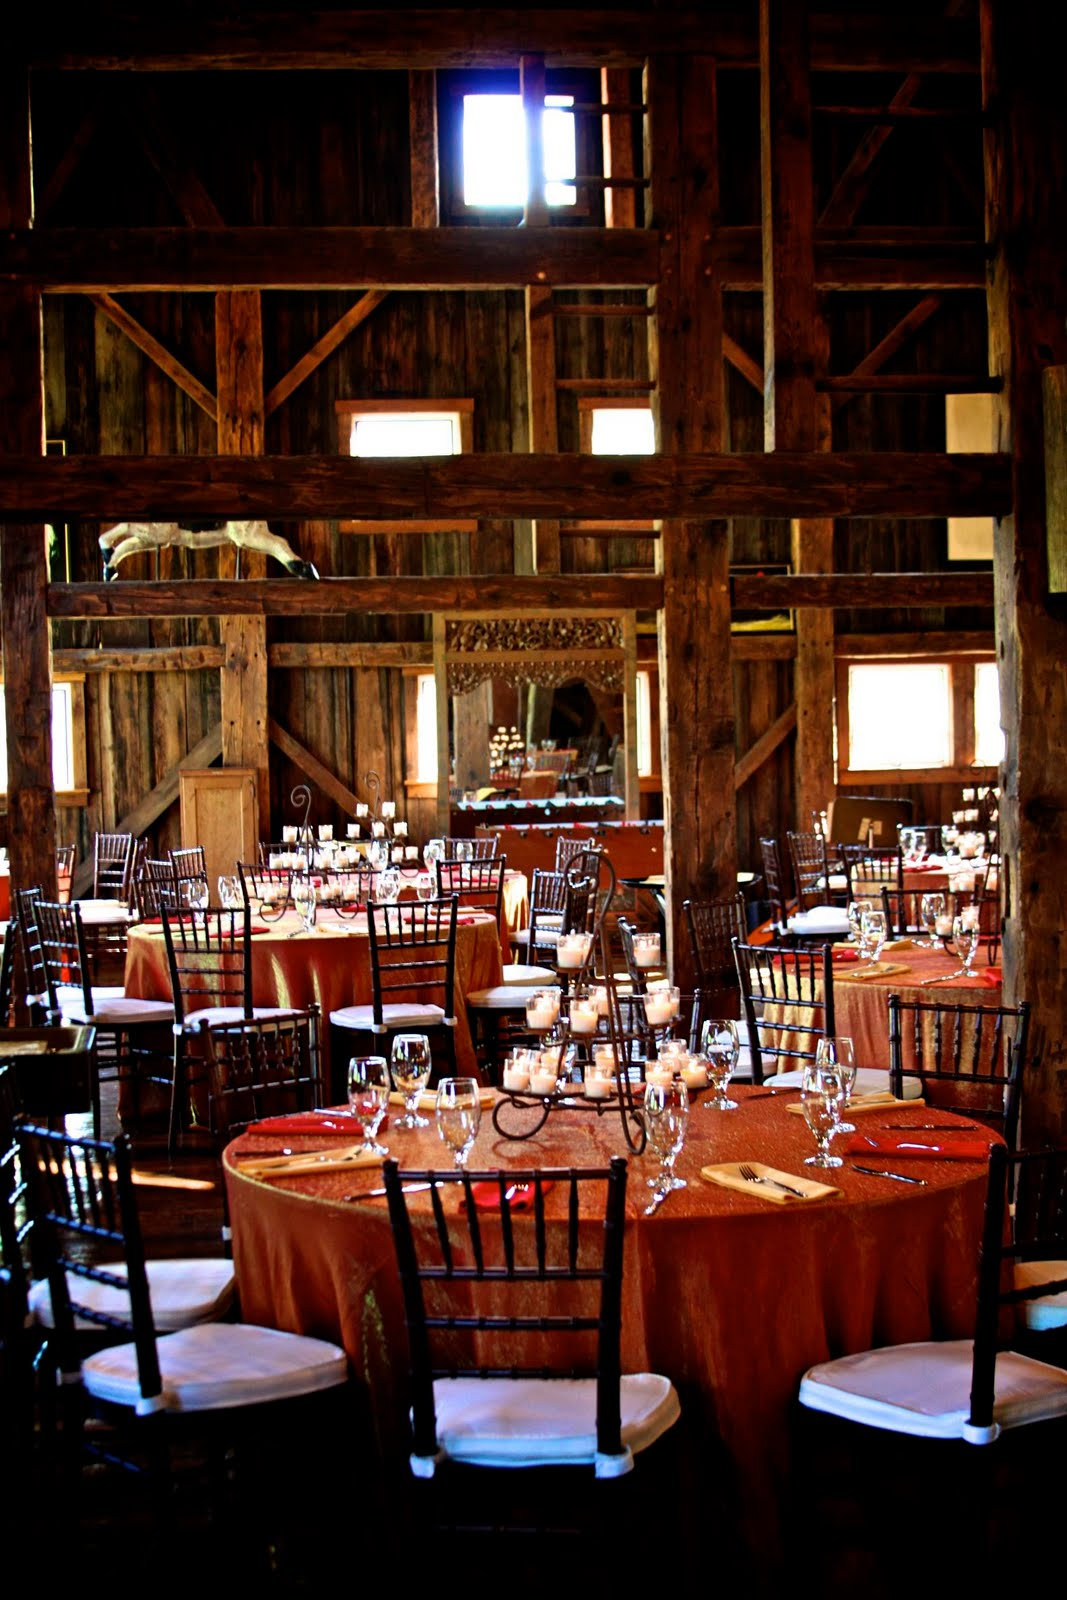 Inside The Red Barn Approx 30 Mins Before Guests Are Invited Insidecandles Not Quite Lit